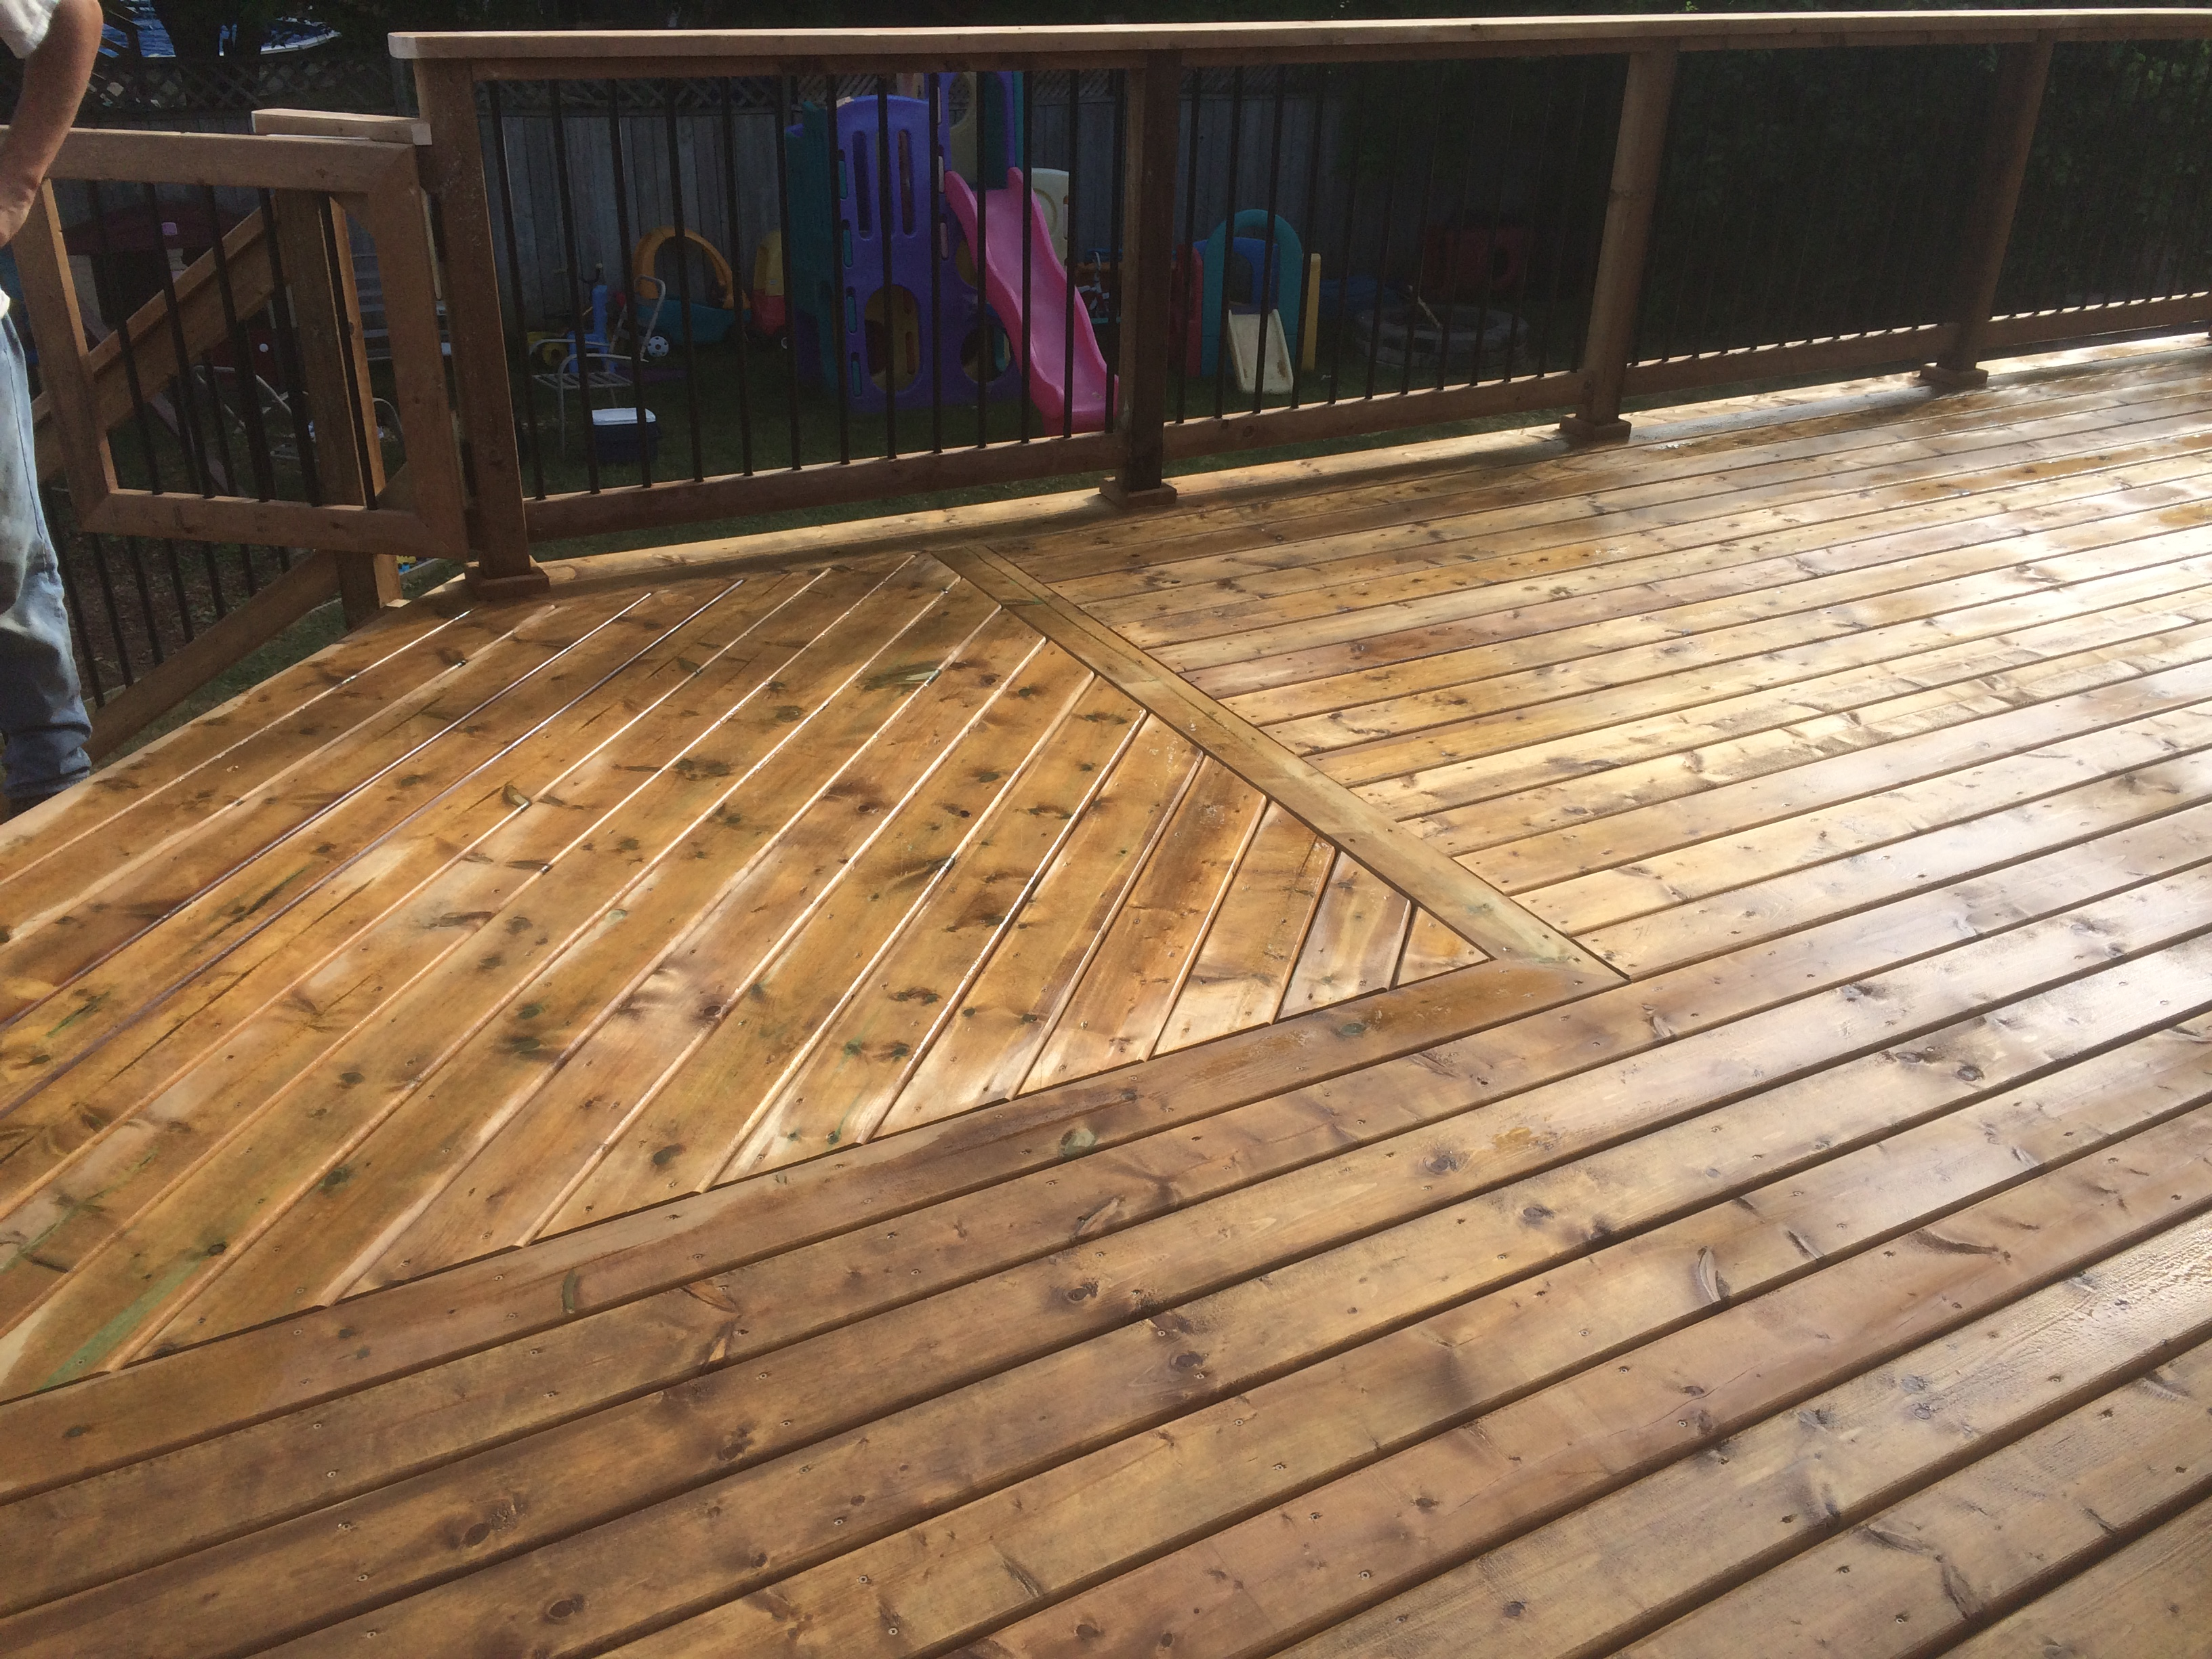 Redcastle Deck - After Construction Angled Decking at Stairs